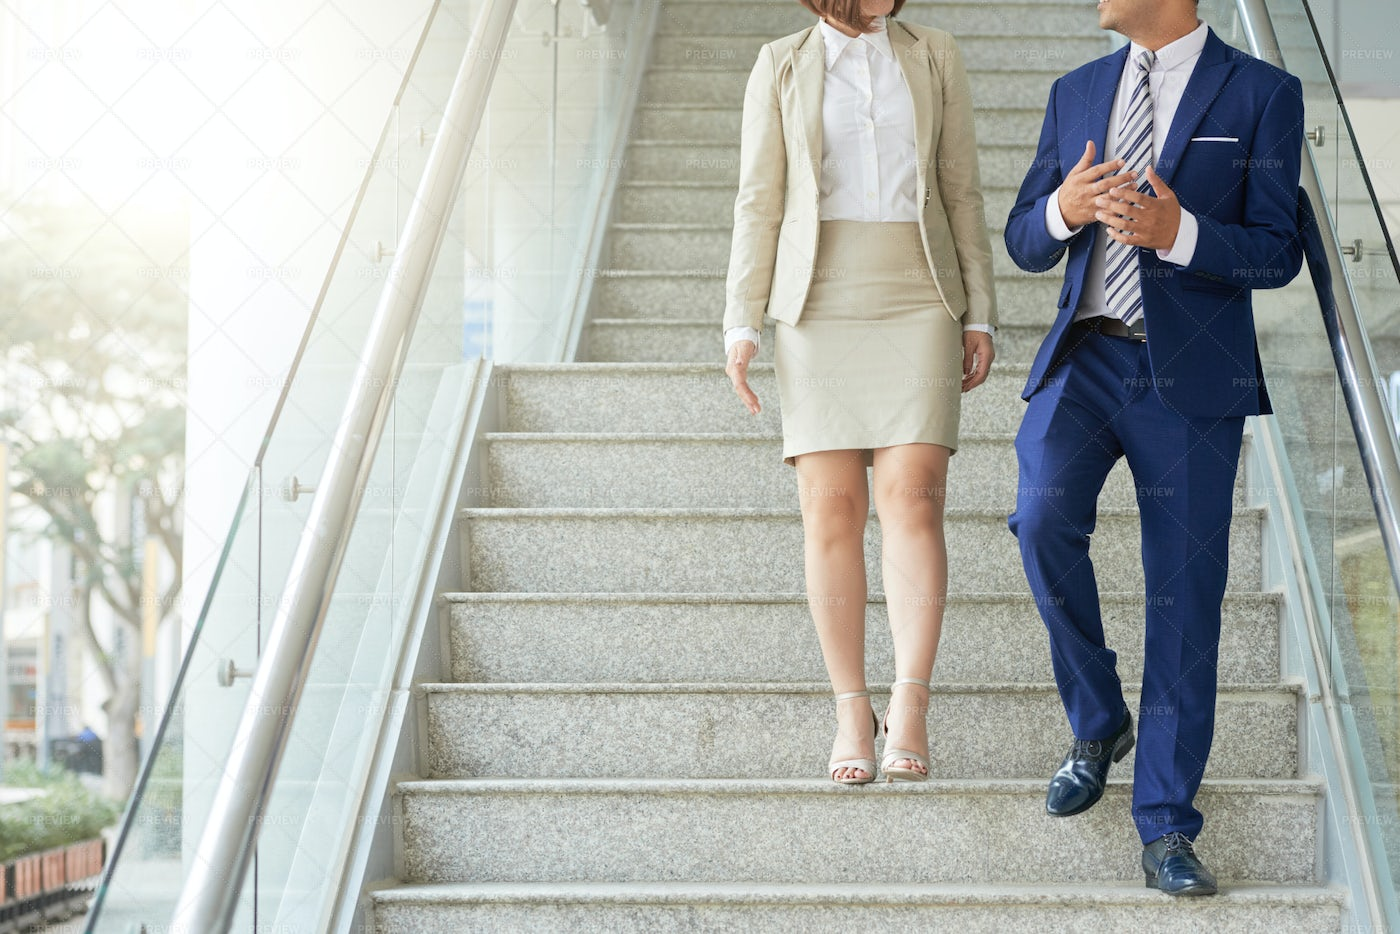 Business People Walking Down The...: Stock Photos